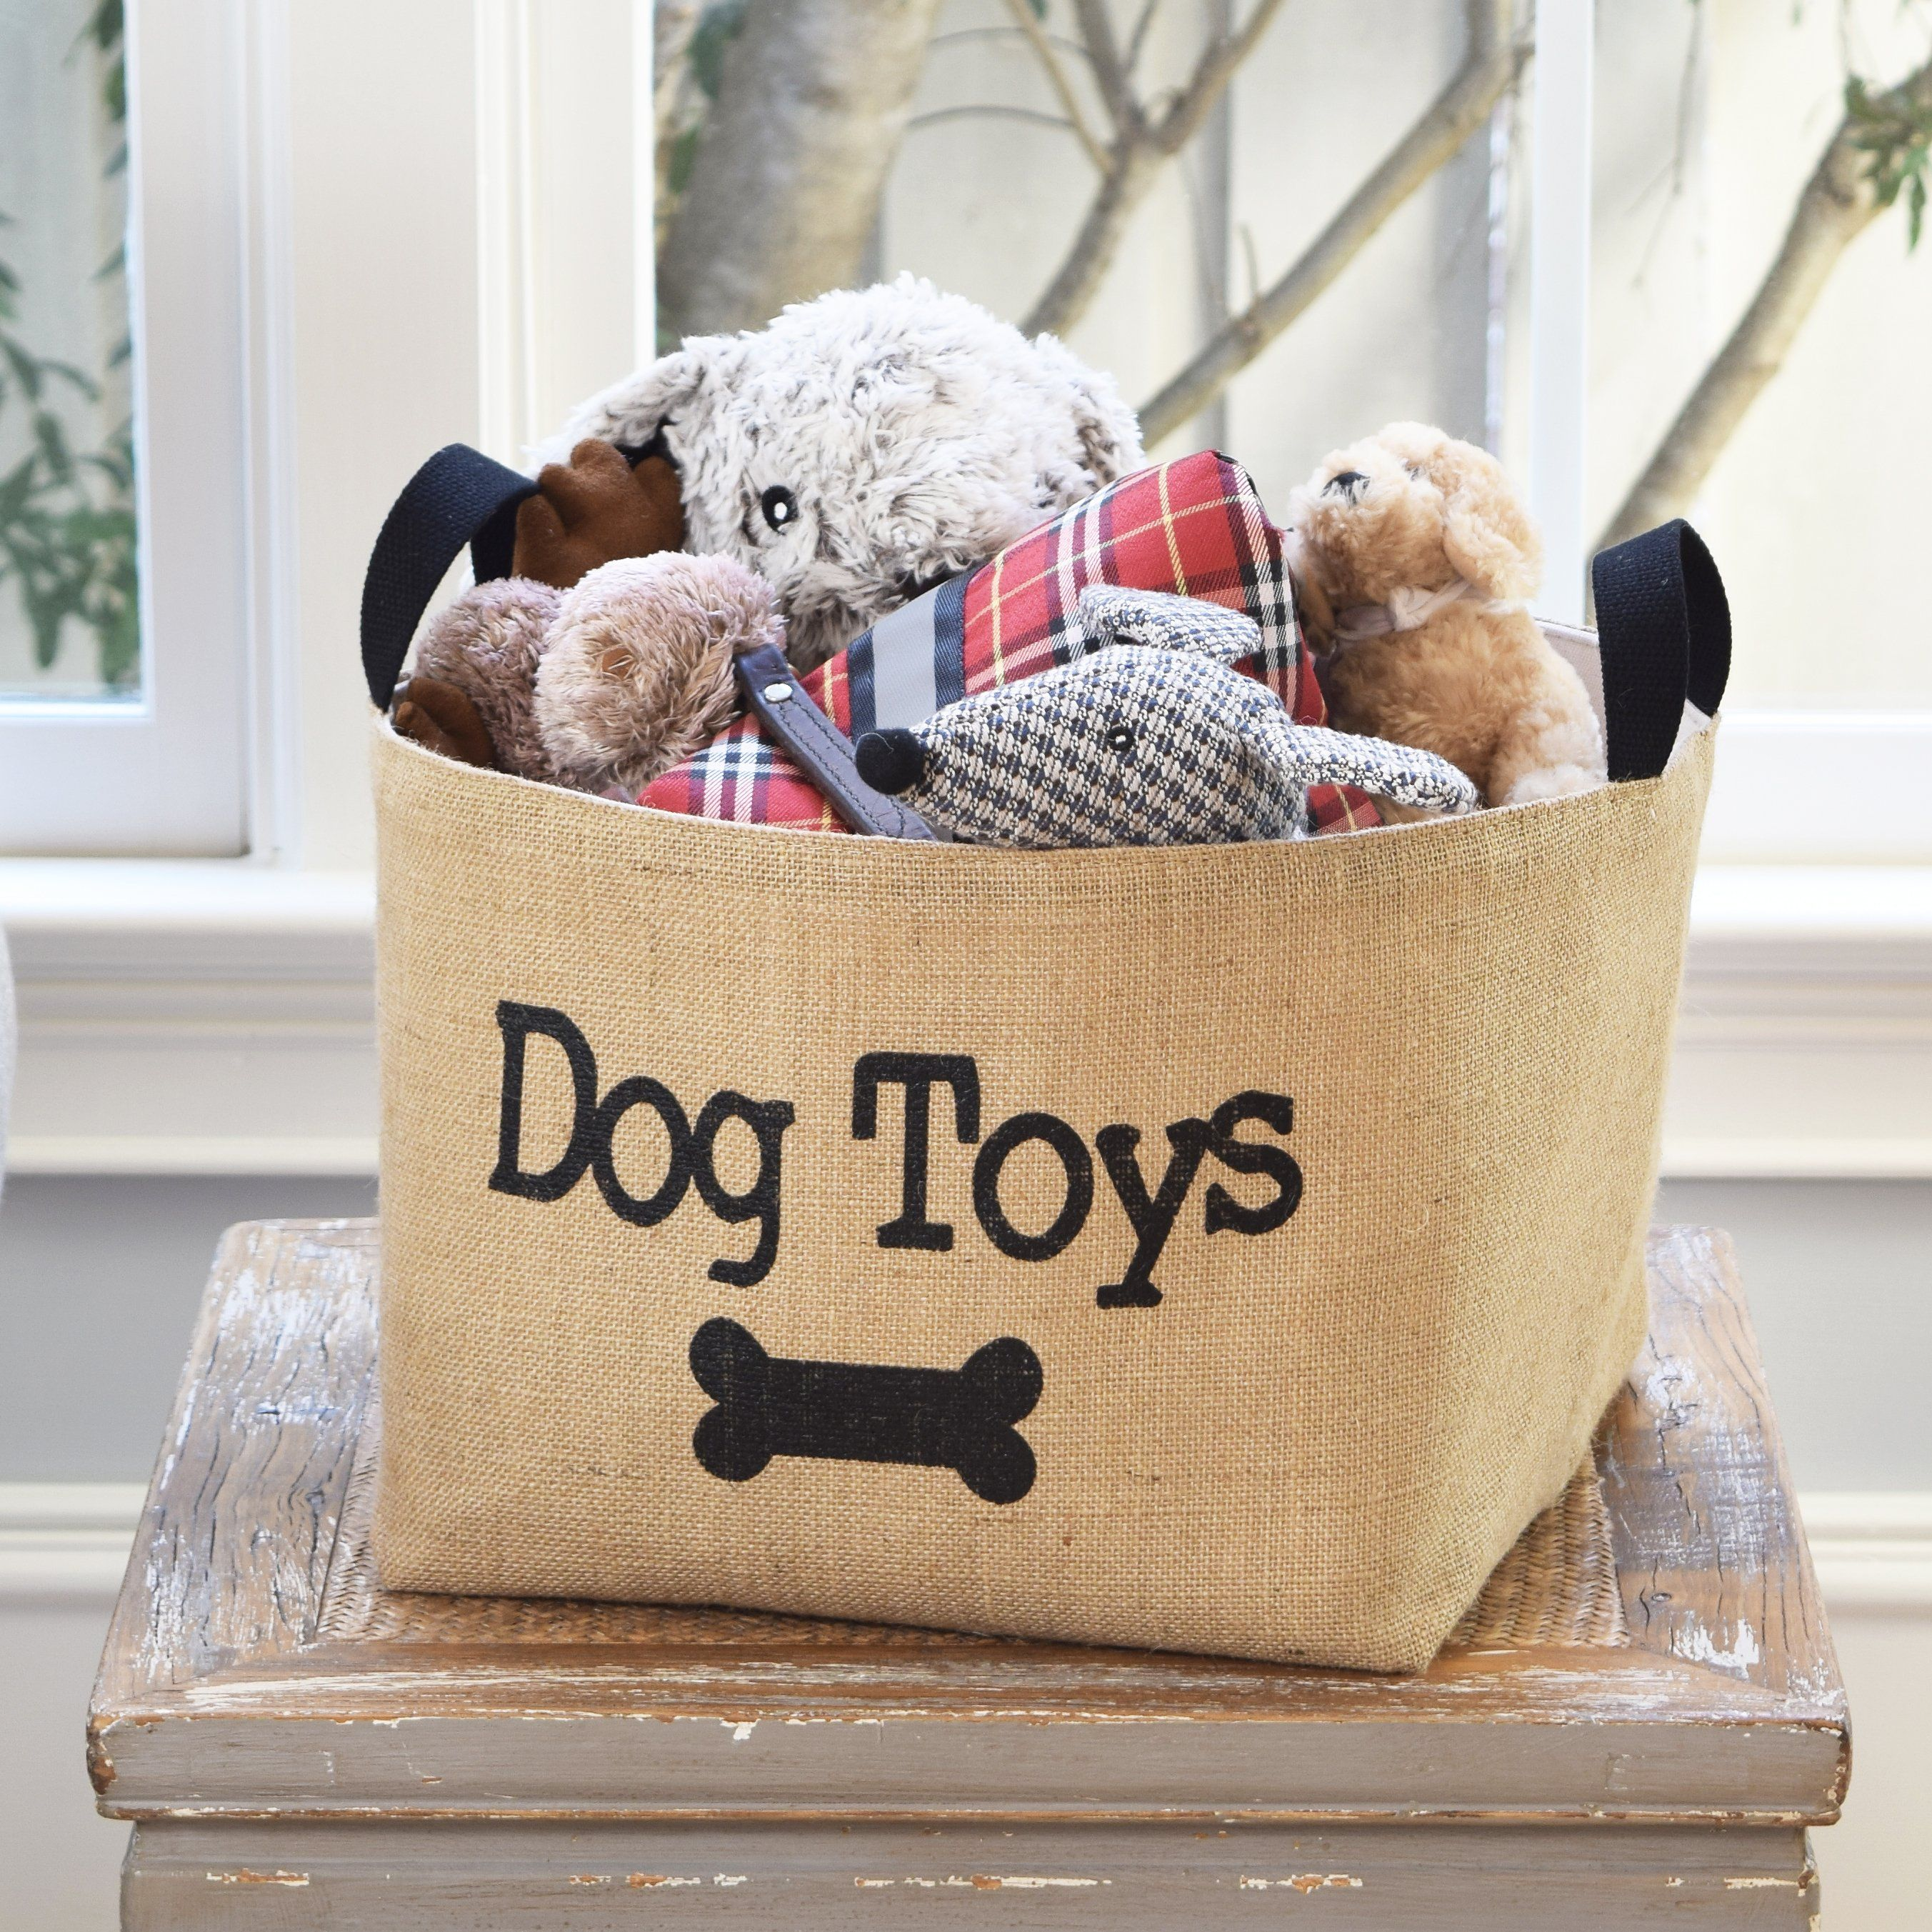 Dog Toys Basket Dog Toy Storage Dog Toy Basket Dog Room Decor